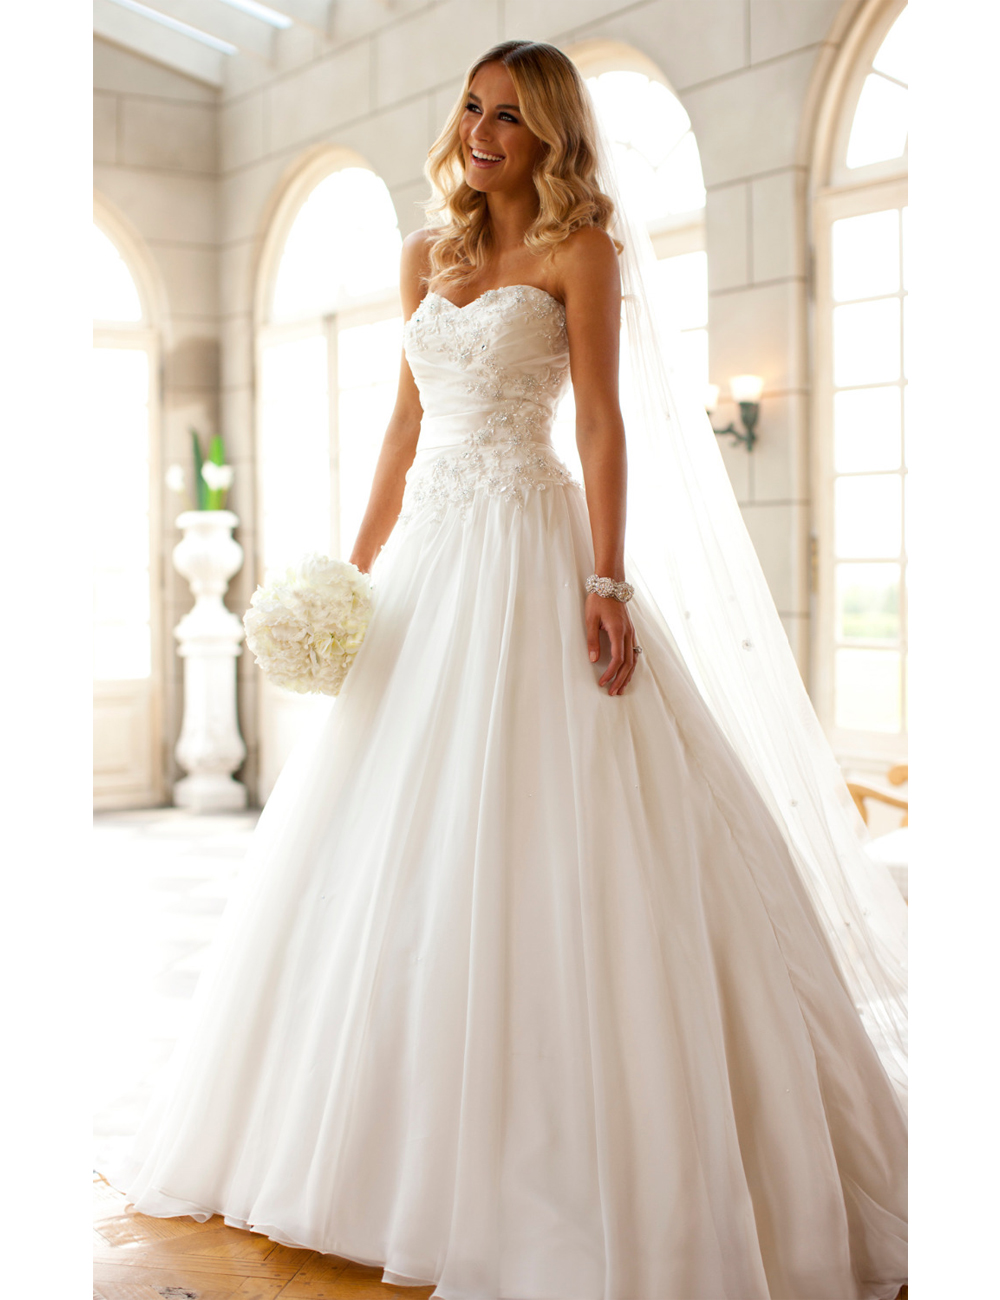 Western Wedding Dresses – How To Pick The Best